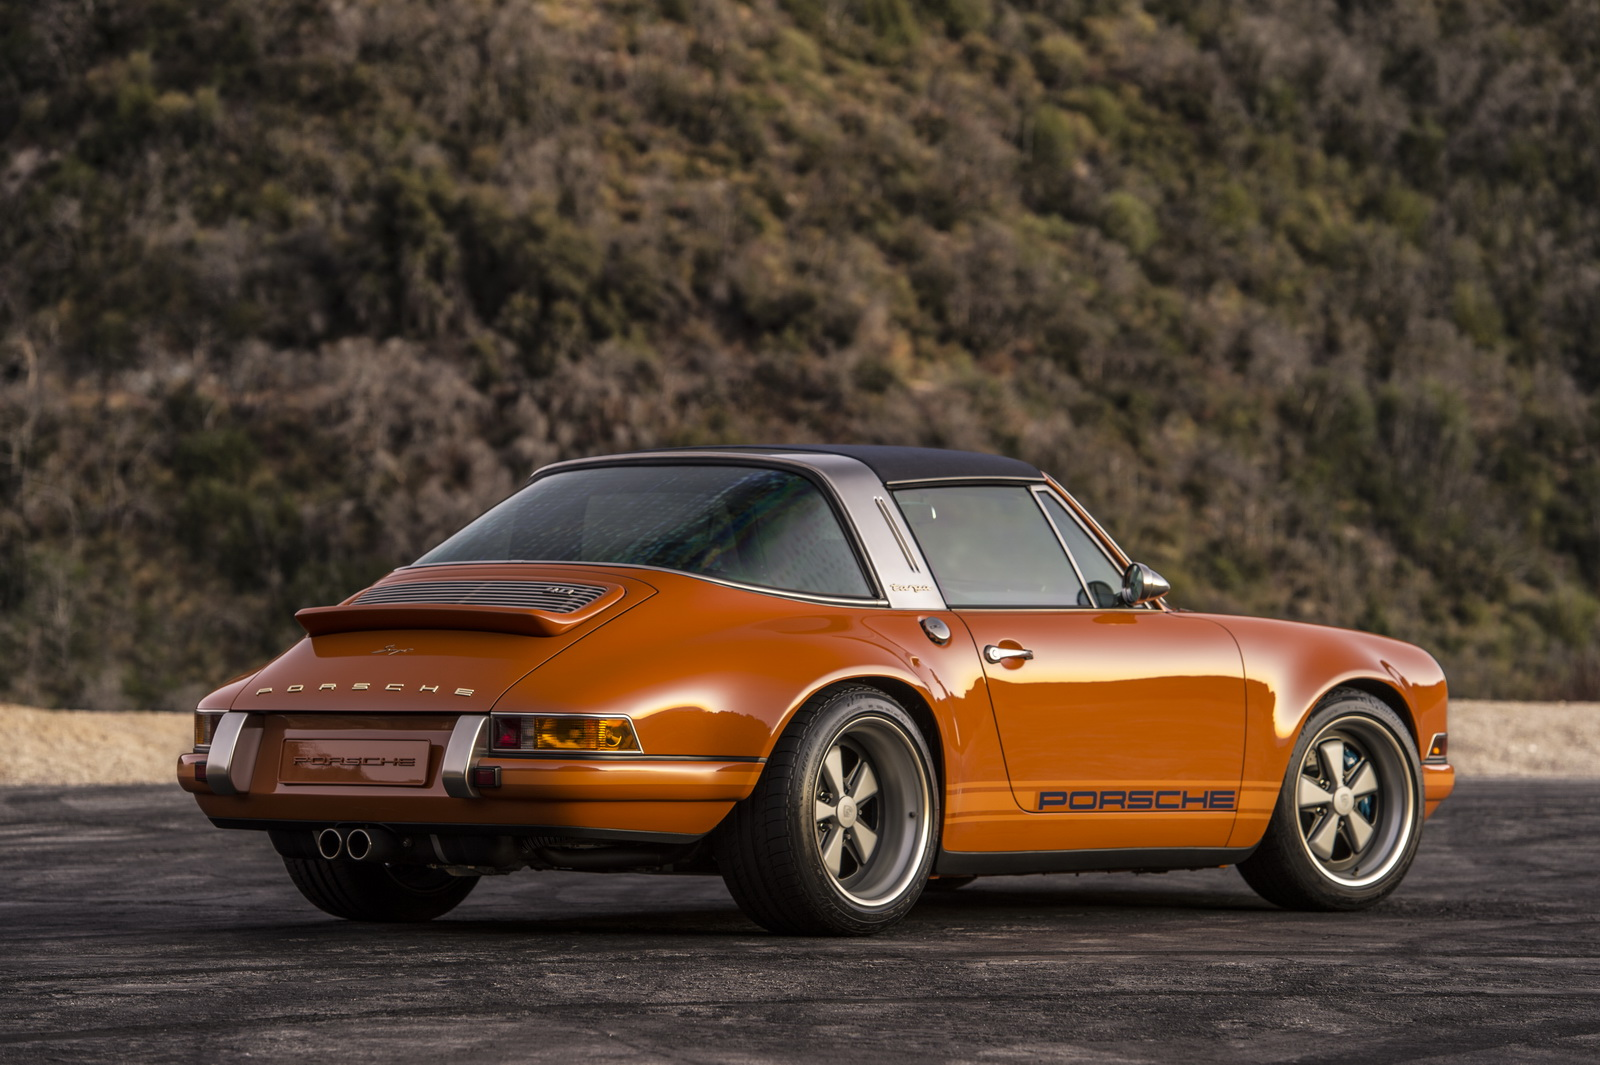 Modified Porsche 911 >> Singer's Orange 'Luxemburg' Targa Is Perfect | Singer | SuperCars.net